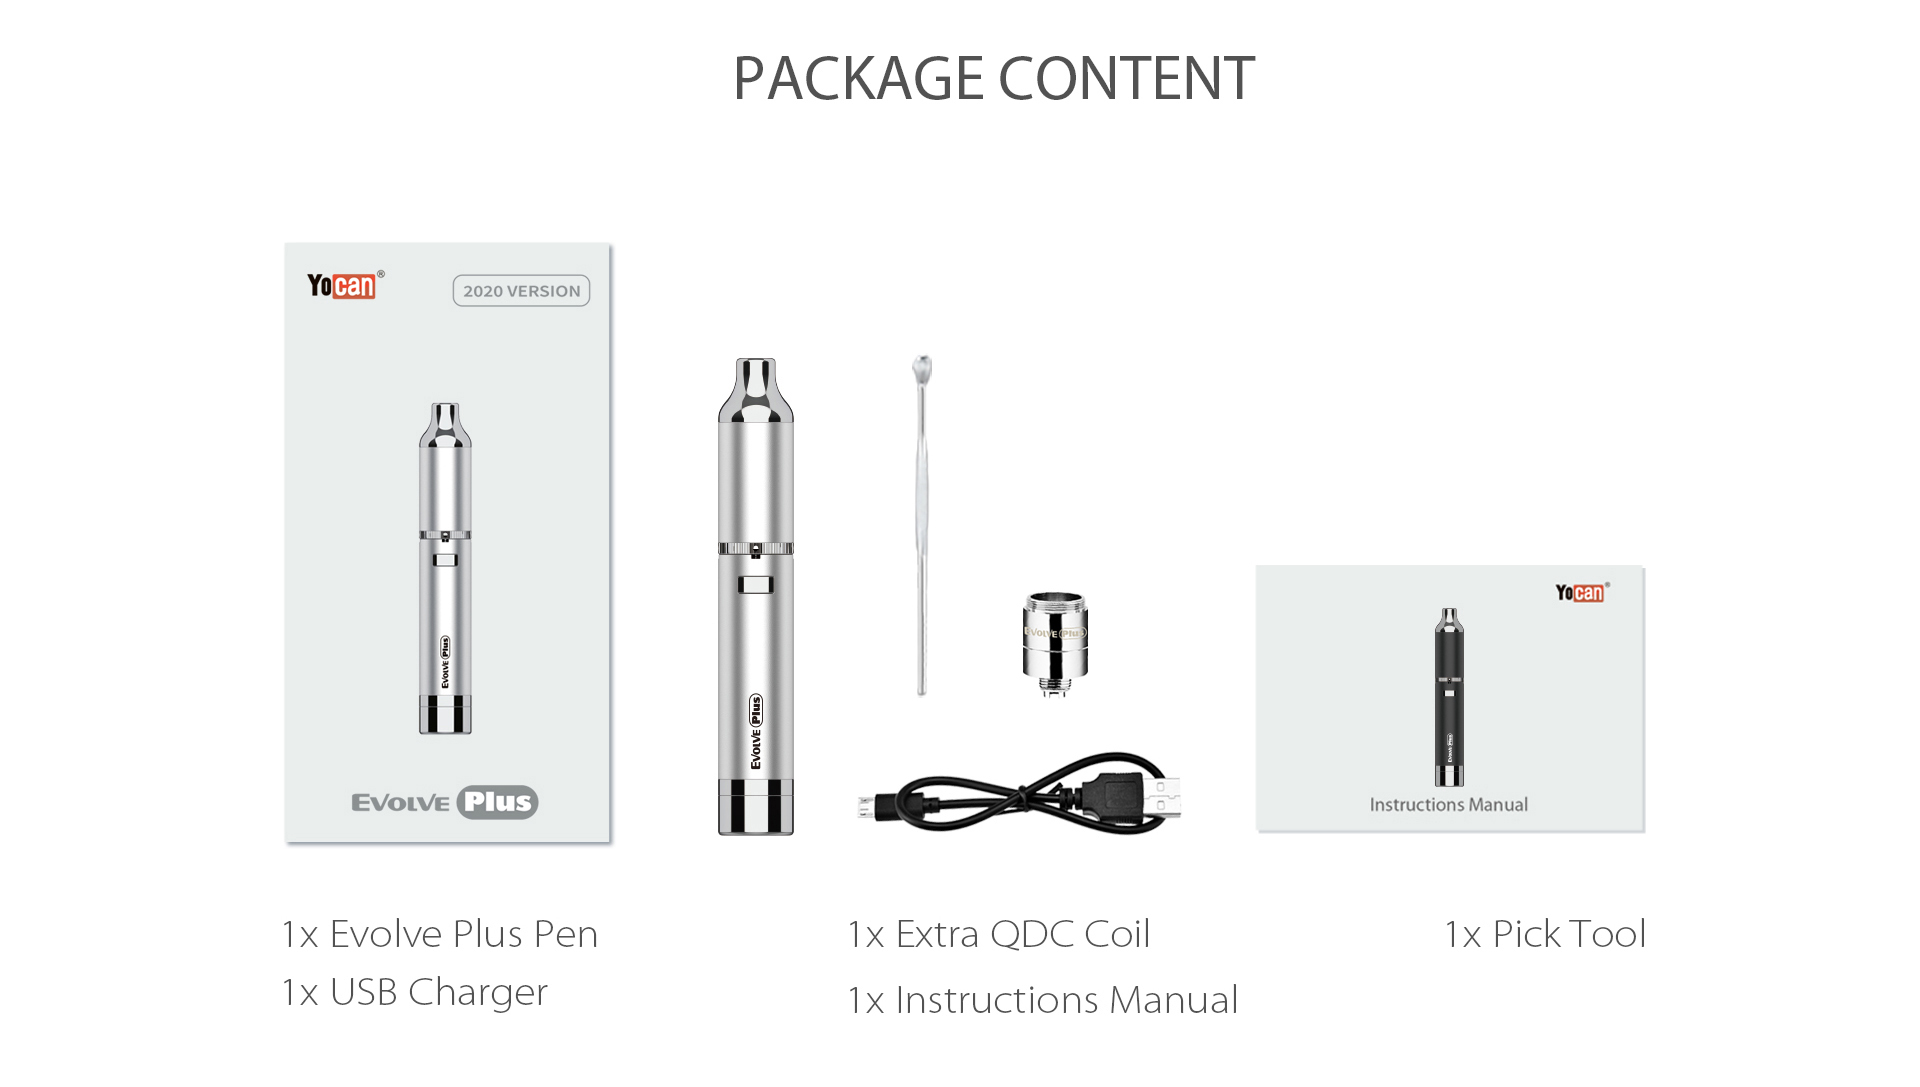 Yocan Evolve Plus XL Vaporizer 2020 version package content.